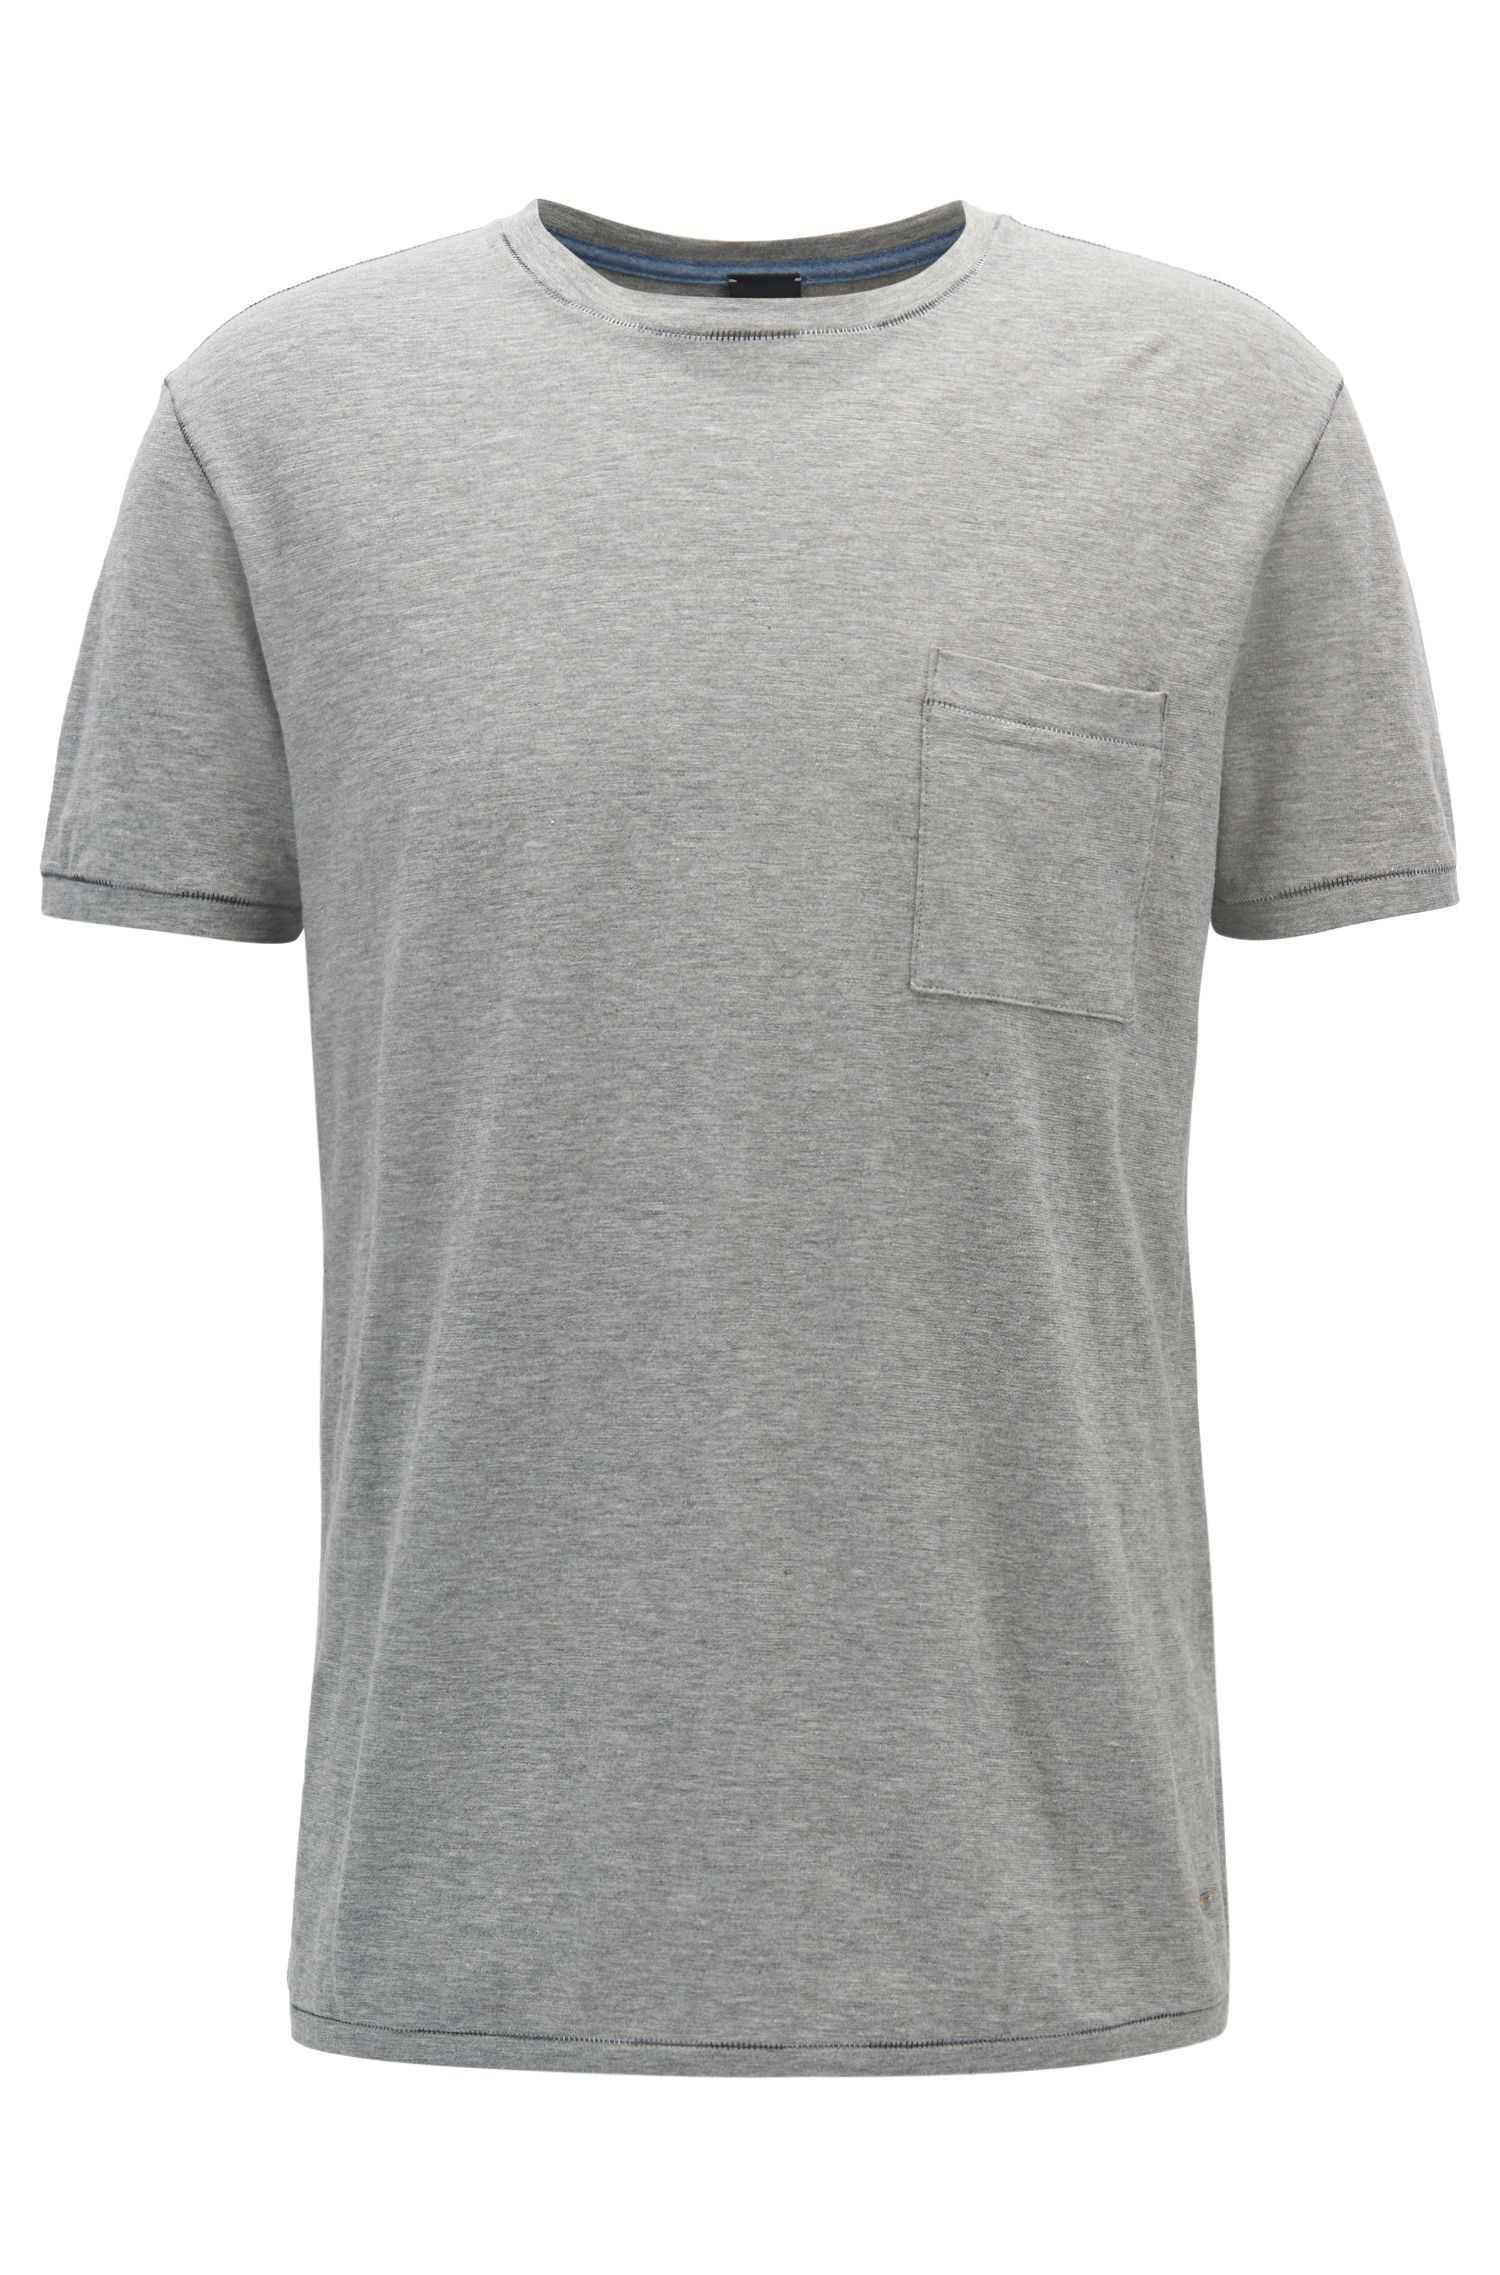 Relaxed-fit T-shirt in slub cotton